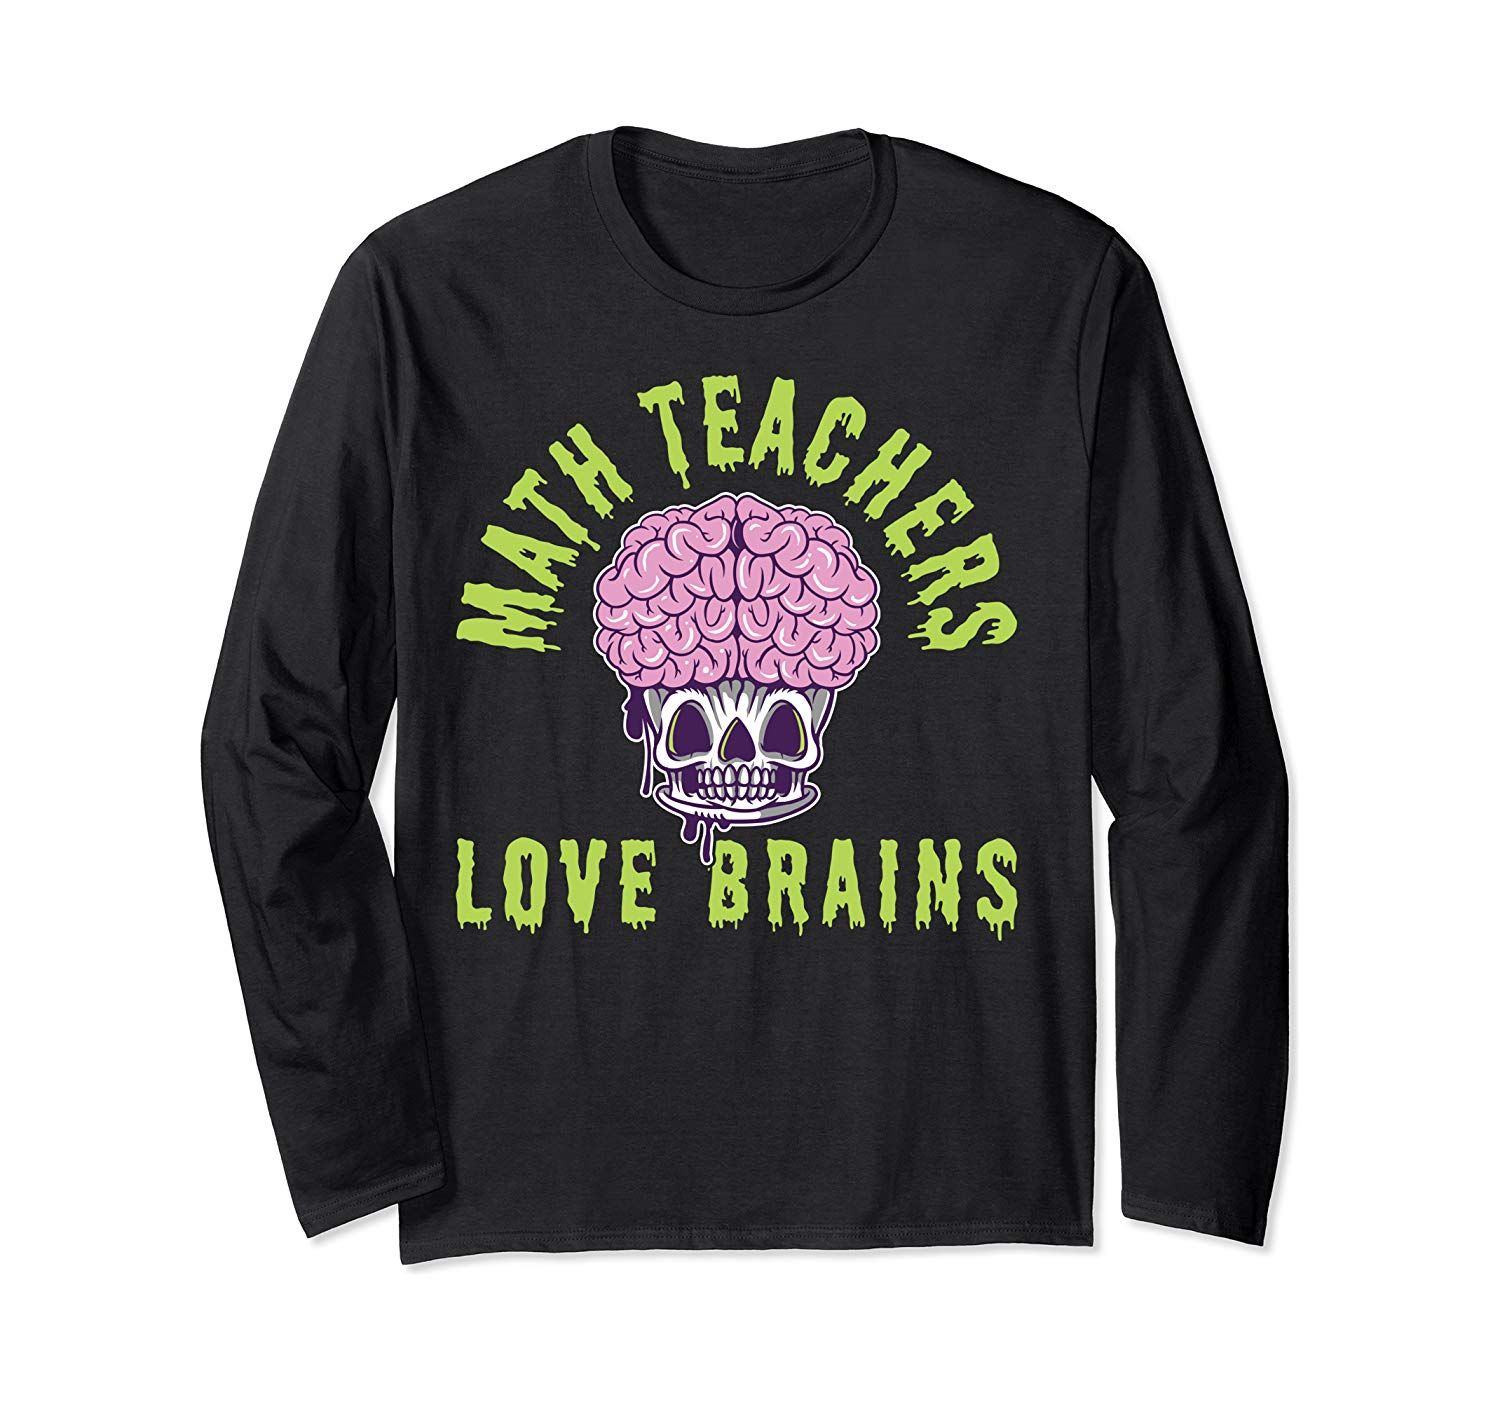 Math Teachers Love Brains Gifts For Halloween Long Sleeve T-Shirt #thanksgivinggiftsforteachers